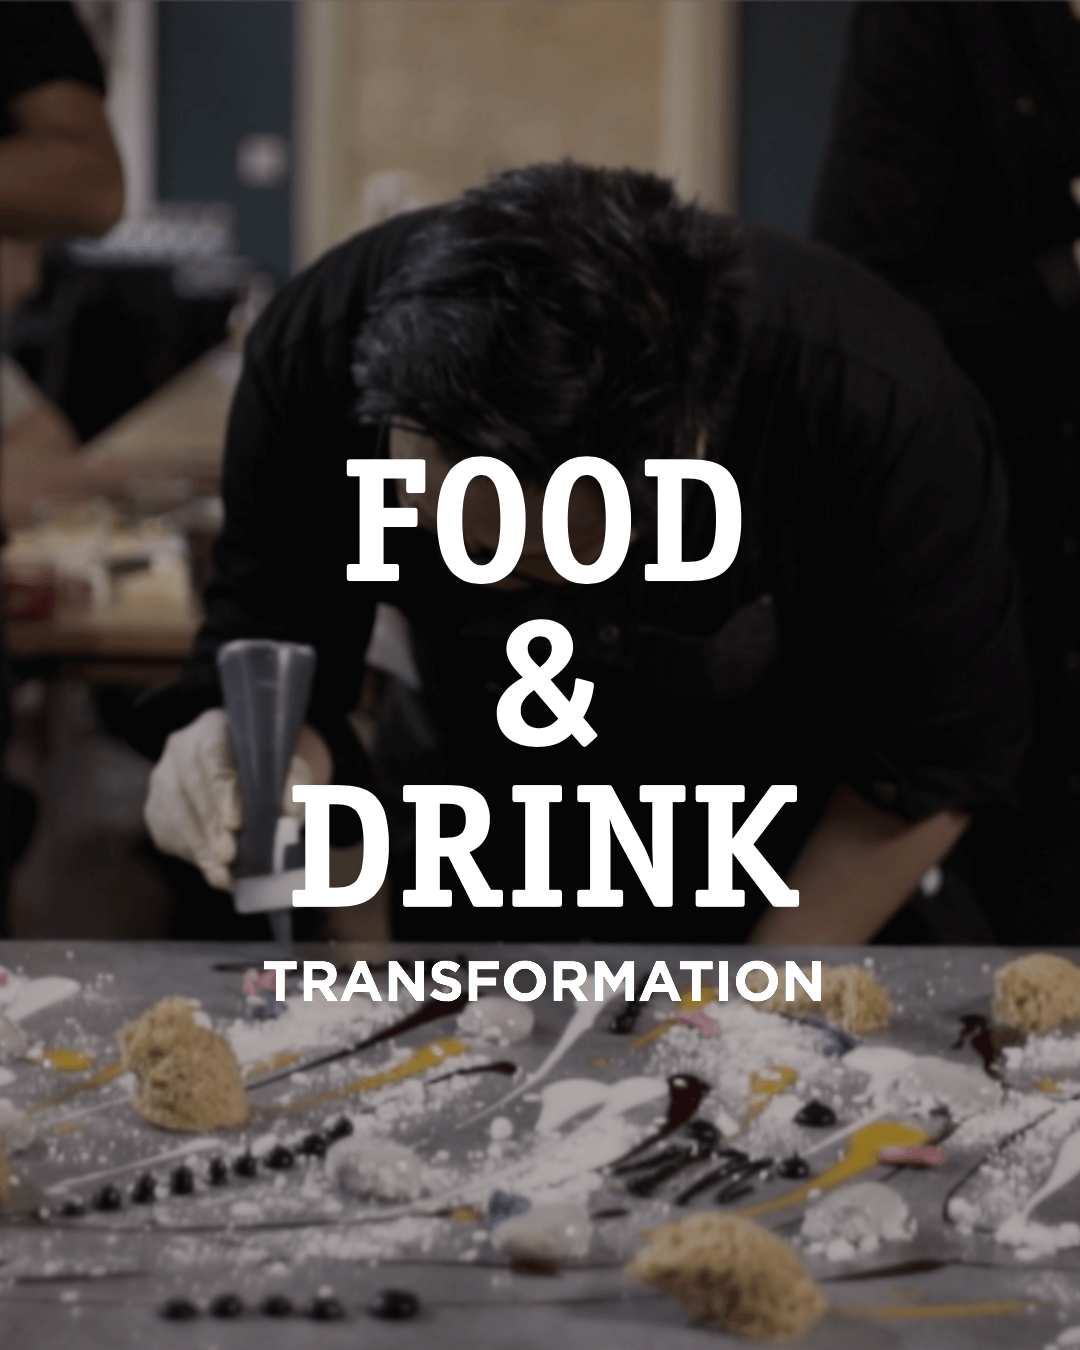 Thomas Henry Food & Drink Transformation